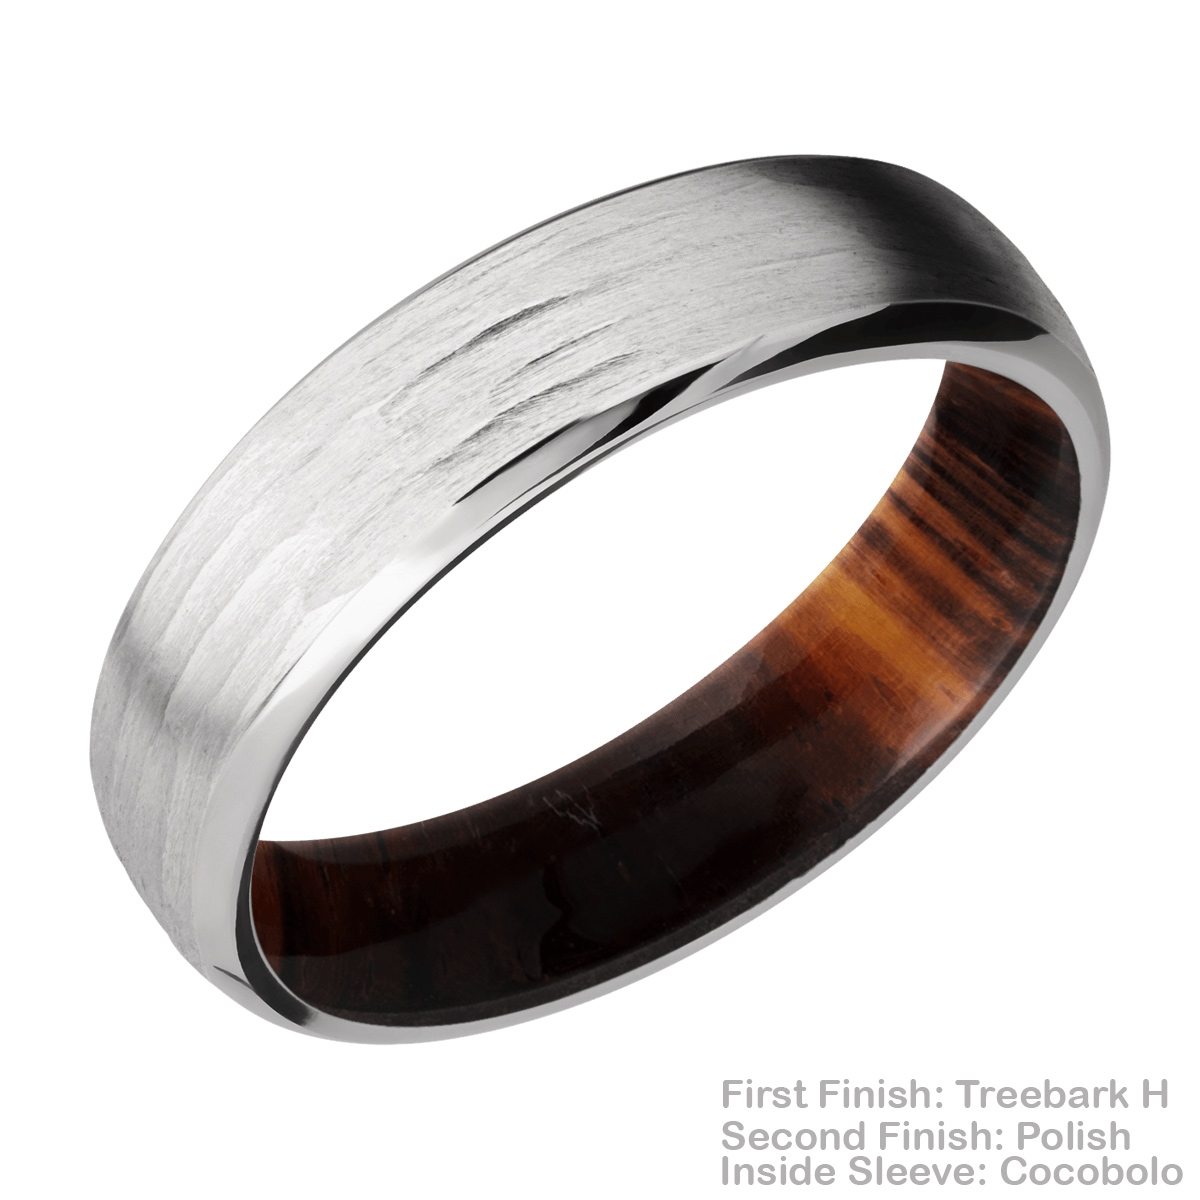 Lashbrook HWSLEEVECC6DB Cobalt Chrome and Hardwood Wedding Ring or Band Alternative View 11